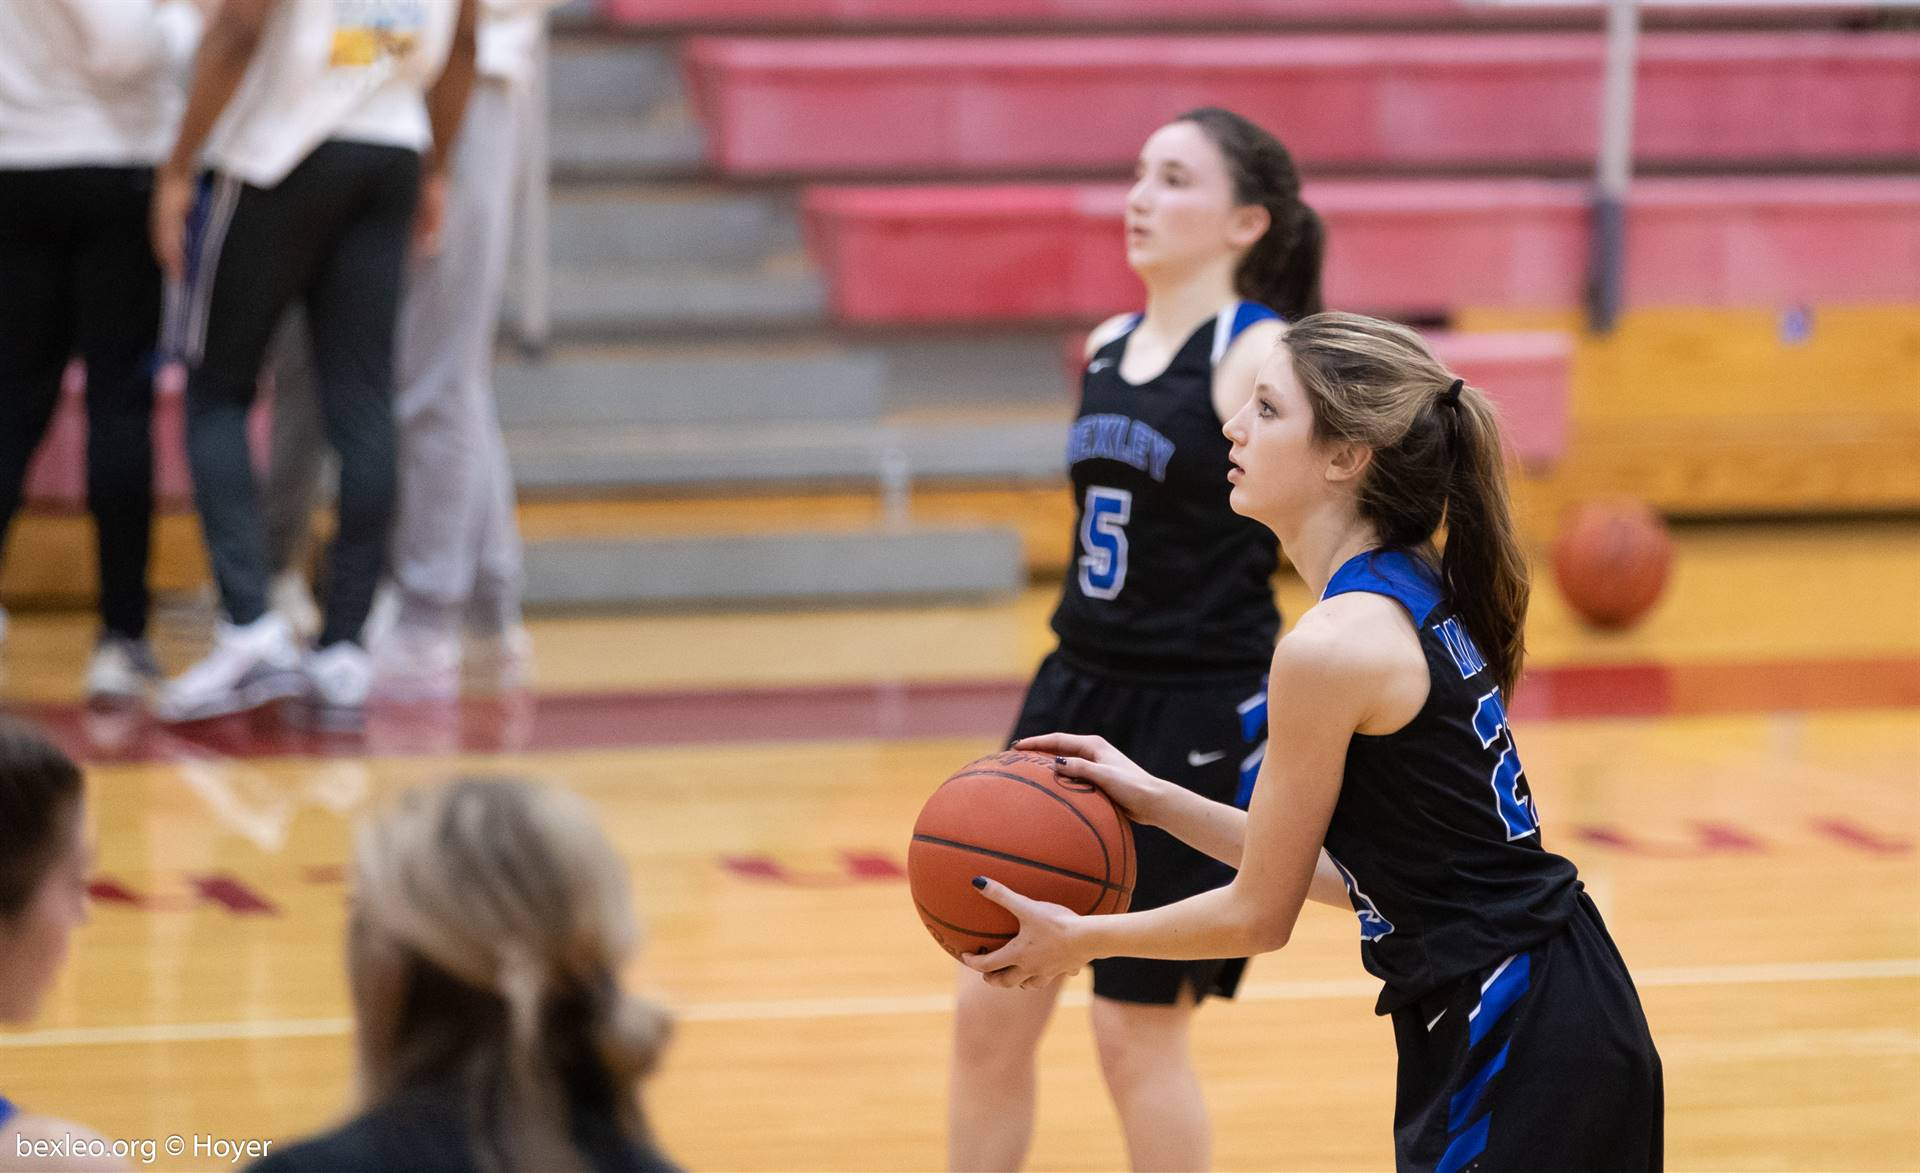 Girls Basketball Player prepares to launch a three-point shot